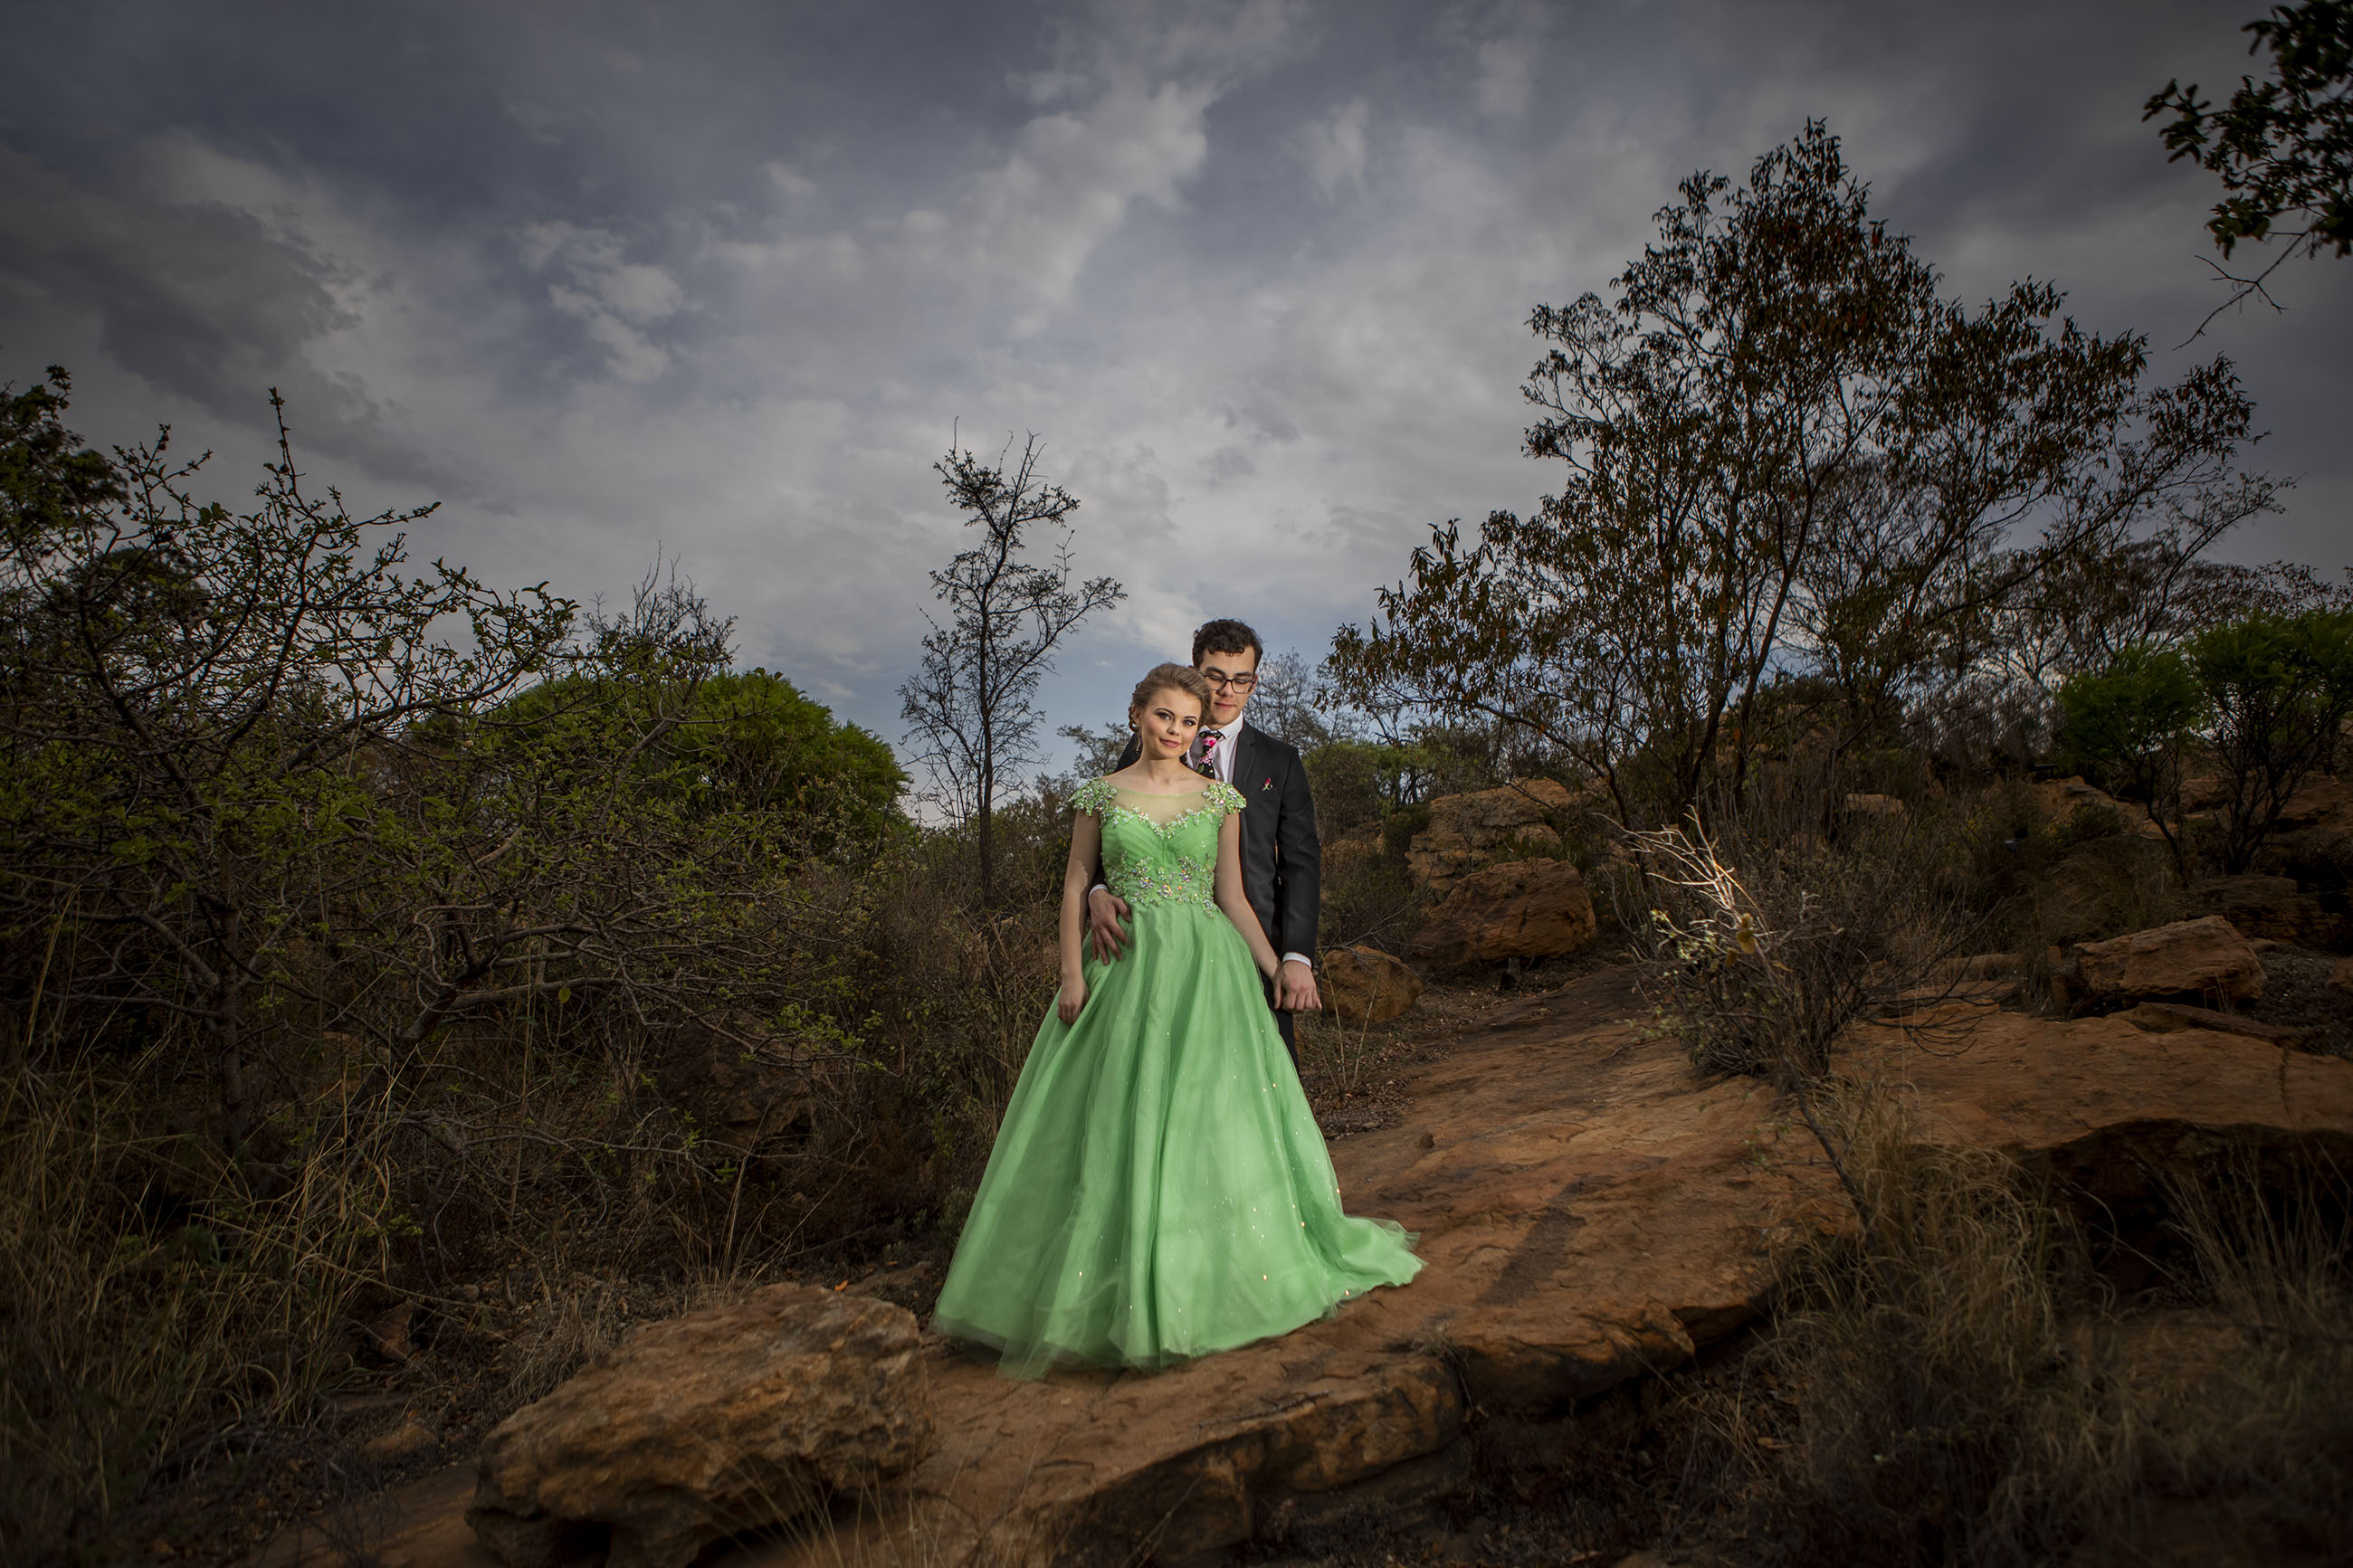 Darrell Fraser Award Winning Matric Farewell Photographer